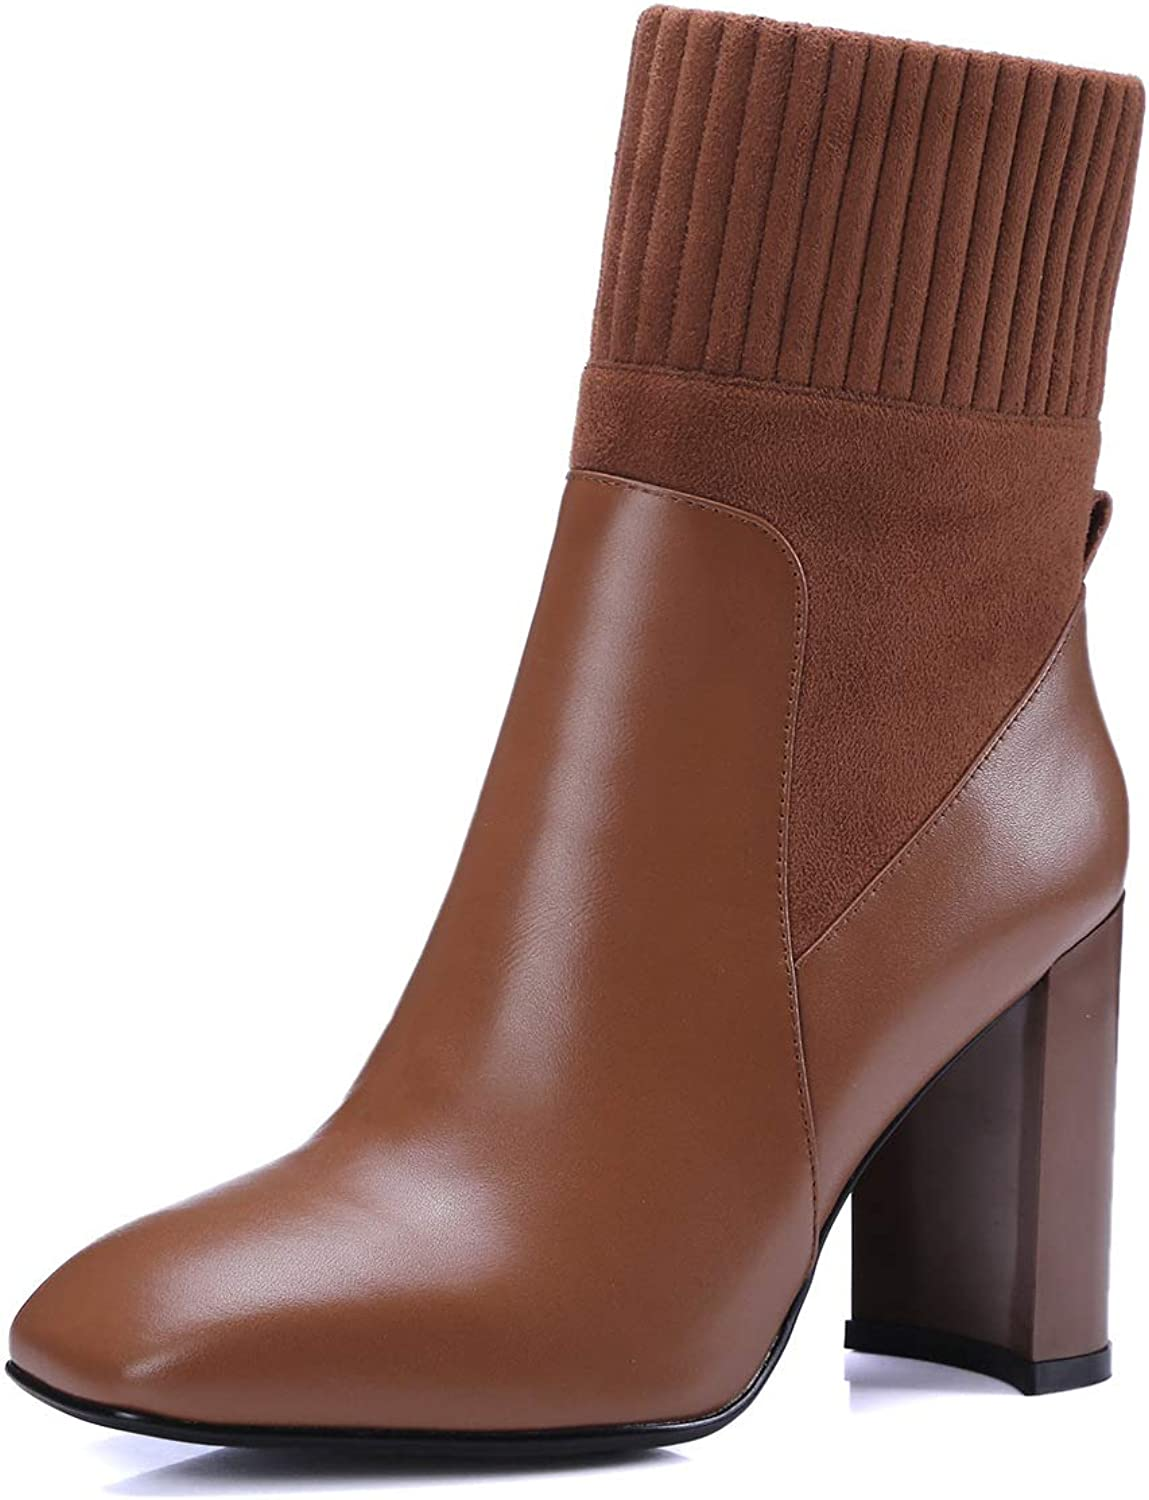 Women's Ankle Boots, Fashion Leather Bare Boots Chunky High Heel Boots, Autumn Zip Up Ankle Bootie, Street Style, Mid Calf Boot (color   B, Size   37)